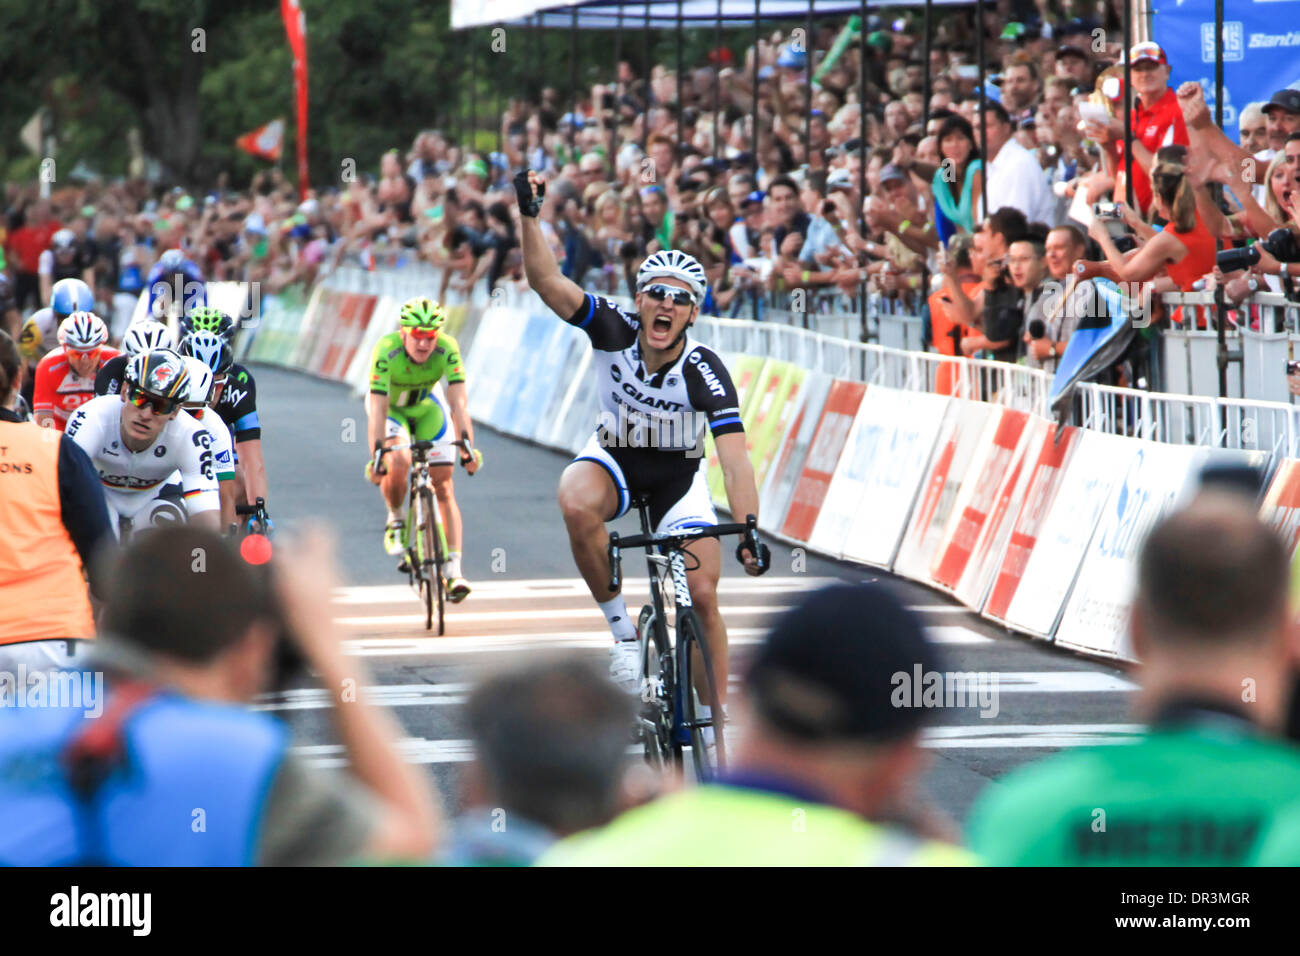 Adelaide, Australia. 19th Jan 2014. Marcel KITTEL of the GIANT SHIMANO Team wins the 'People's Choice Classic', as a prelude to the 2014 Santos Tour Down Under in Adelaide Australia. Credit:  Boris Karpinski/Alamy Live News - Stock Image